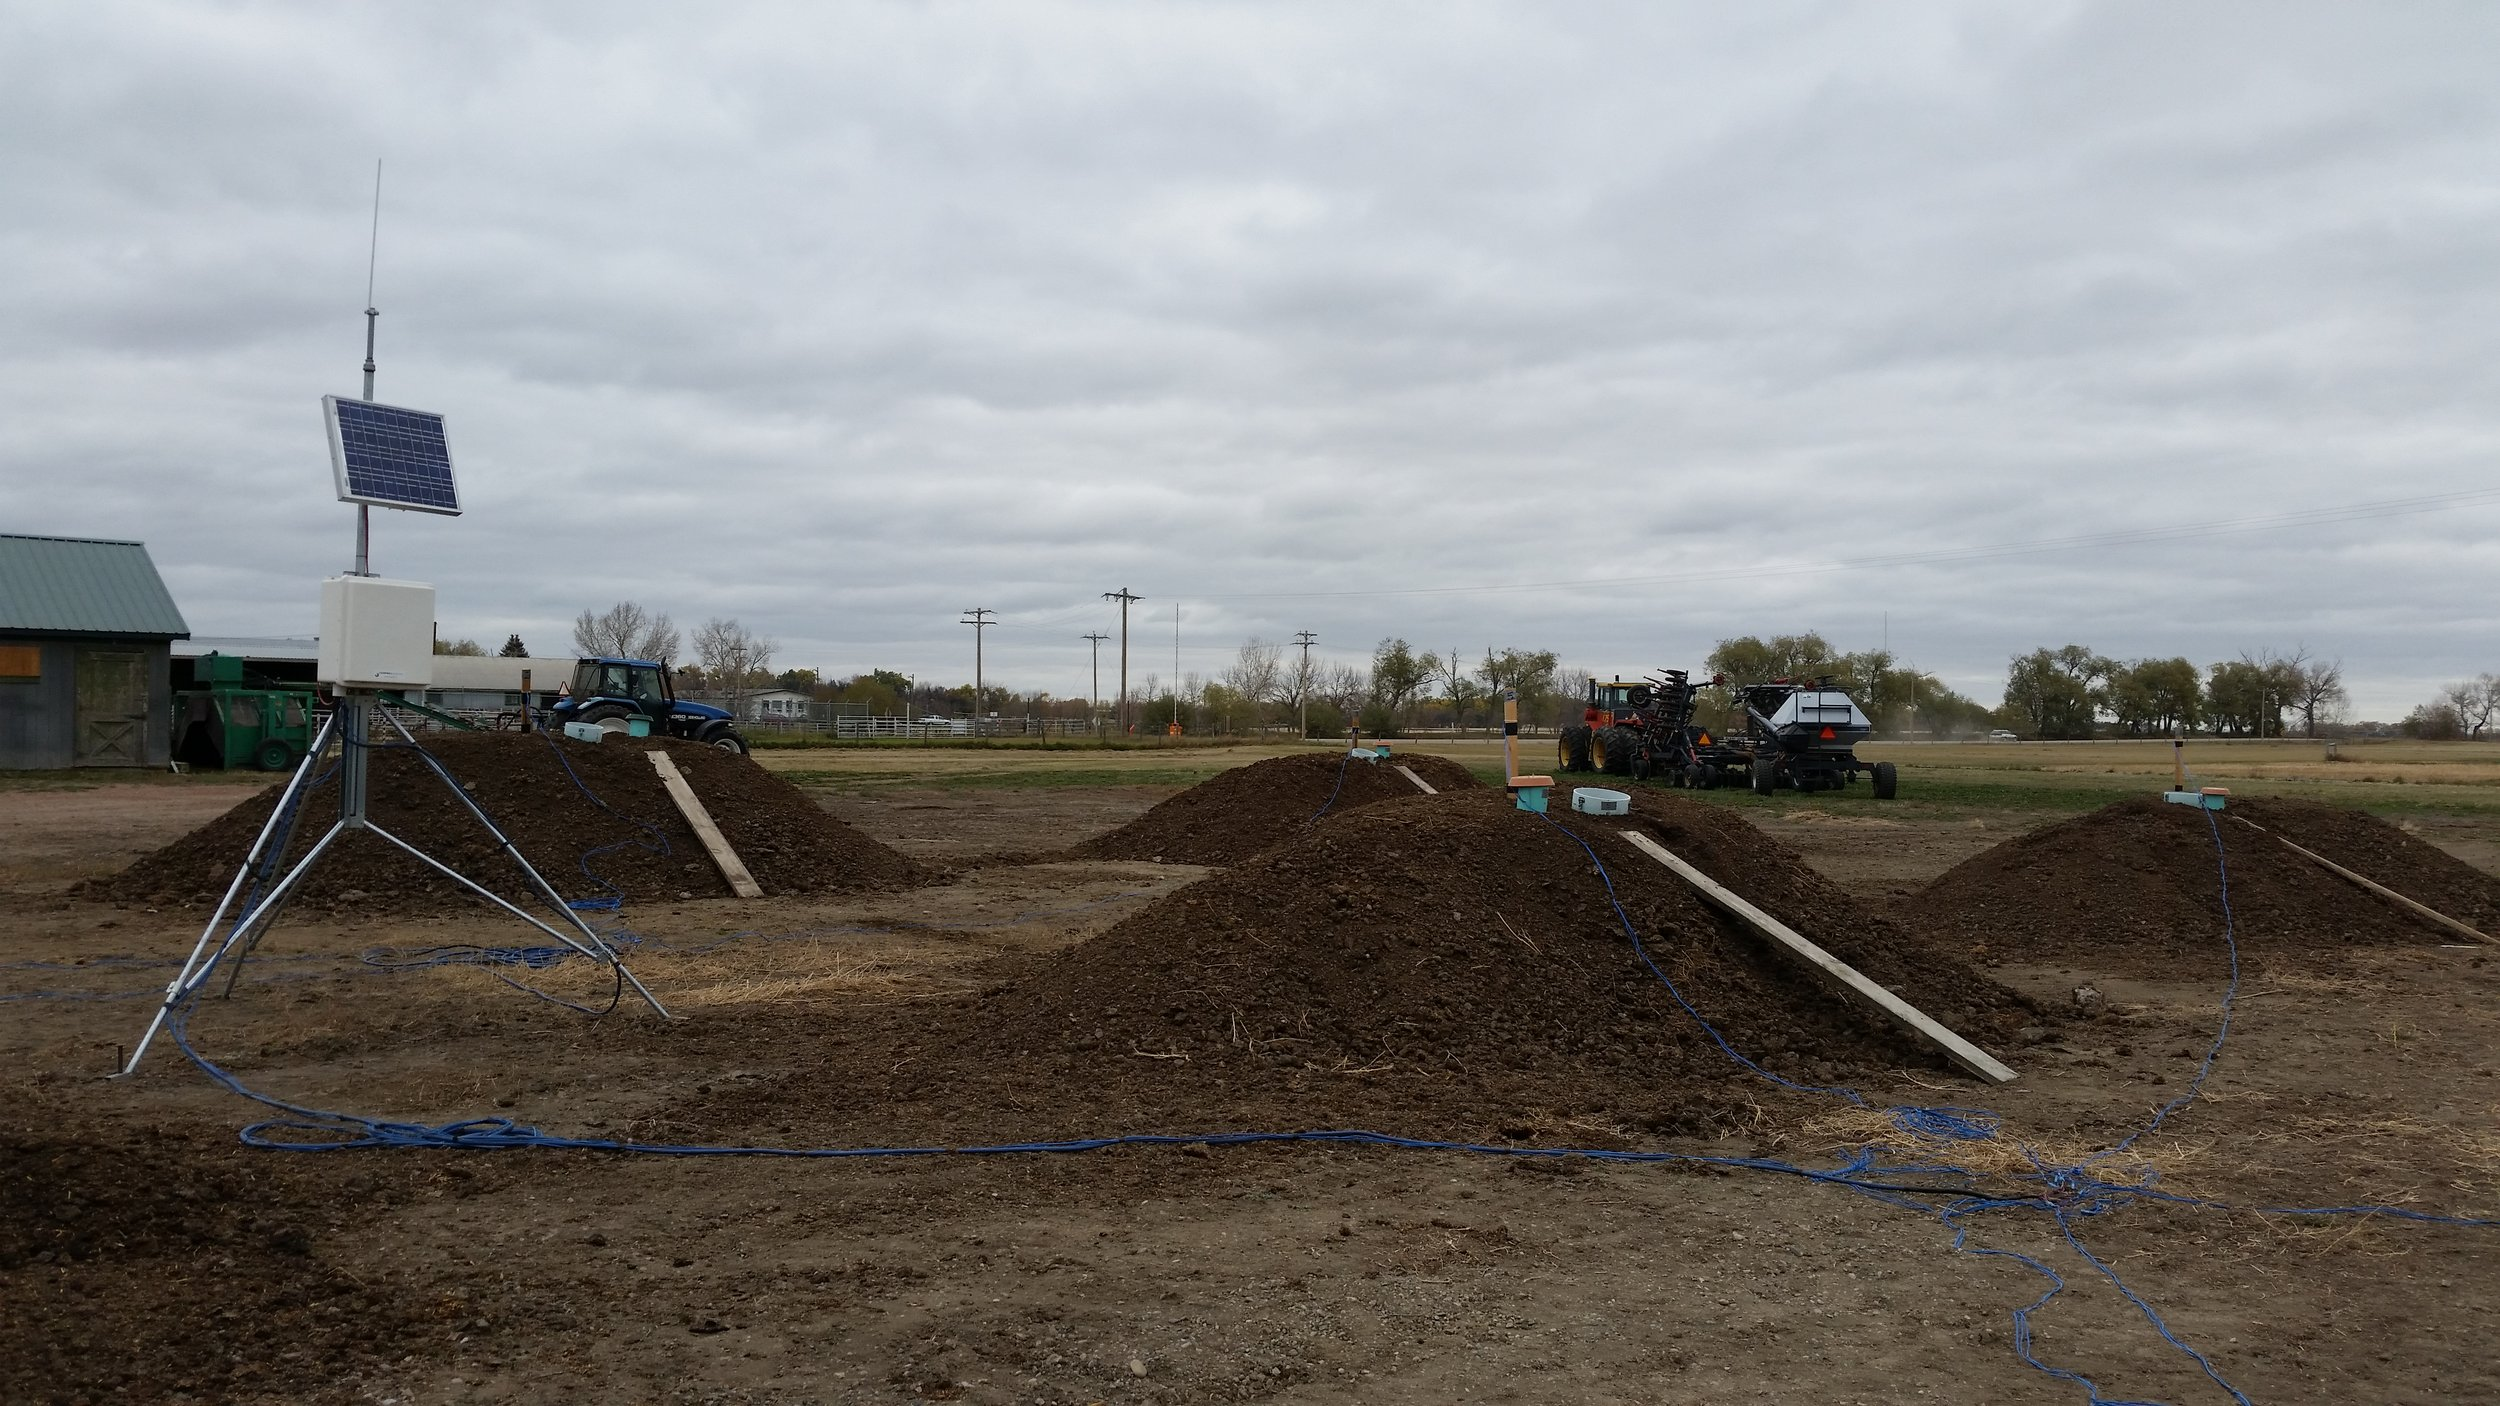 Piles of composting manure at the Agriculture and Agri-Food Canada facility.